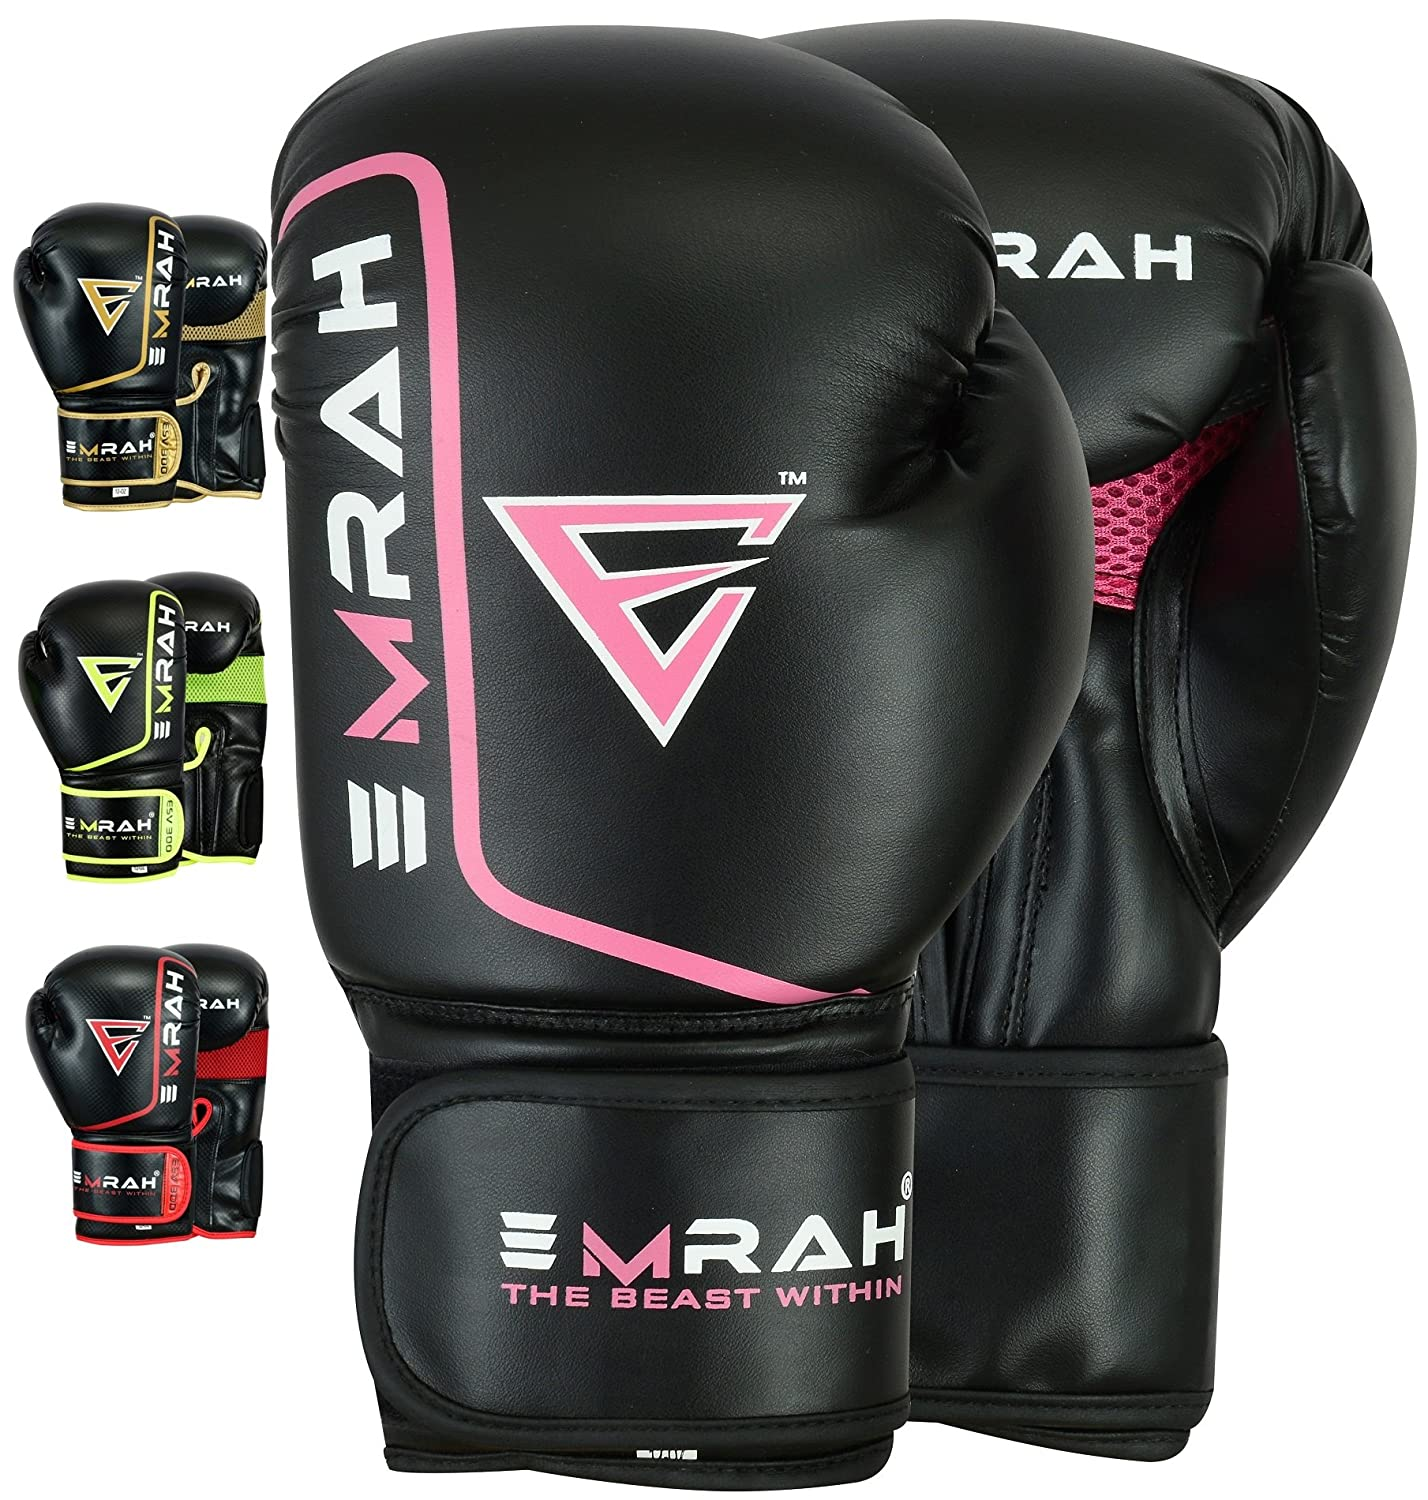 EMRAH ESV-300 Boxing Gloves Muay Thai Training DX Hide Leather Sparring Punching Bag Mitts kickboxing Fighting